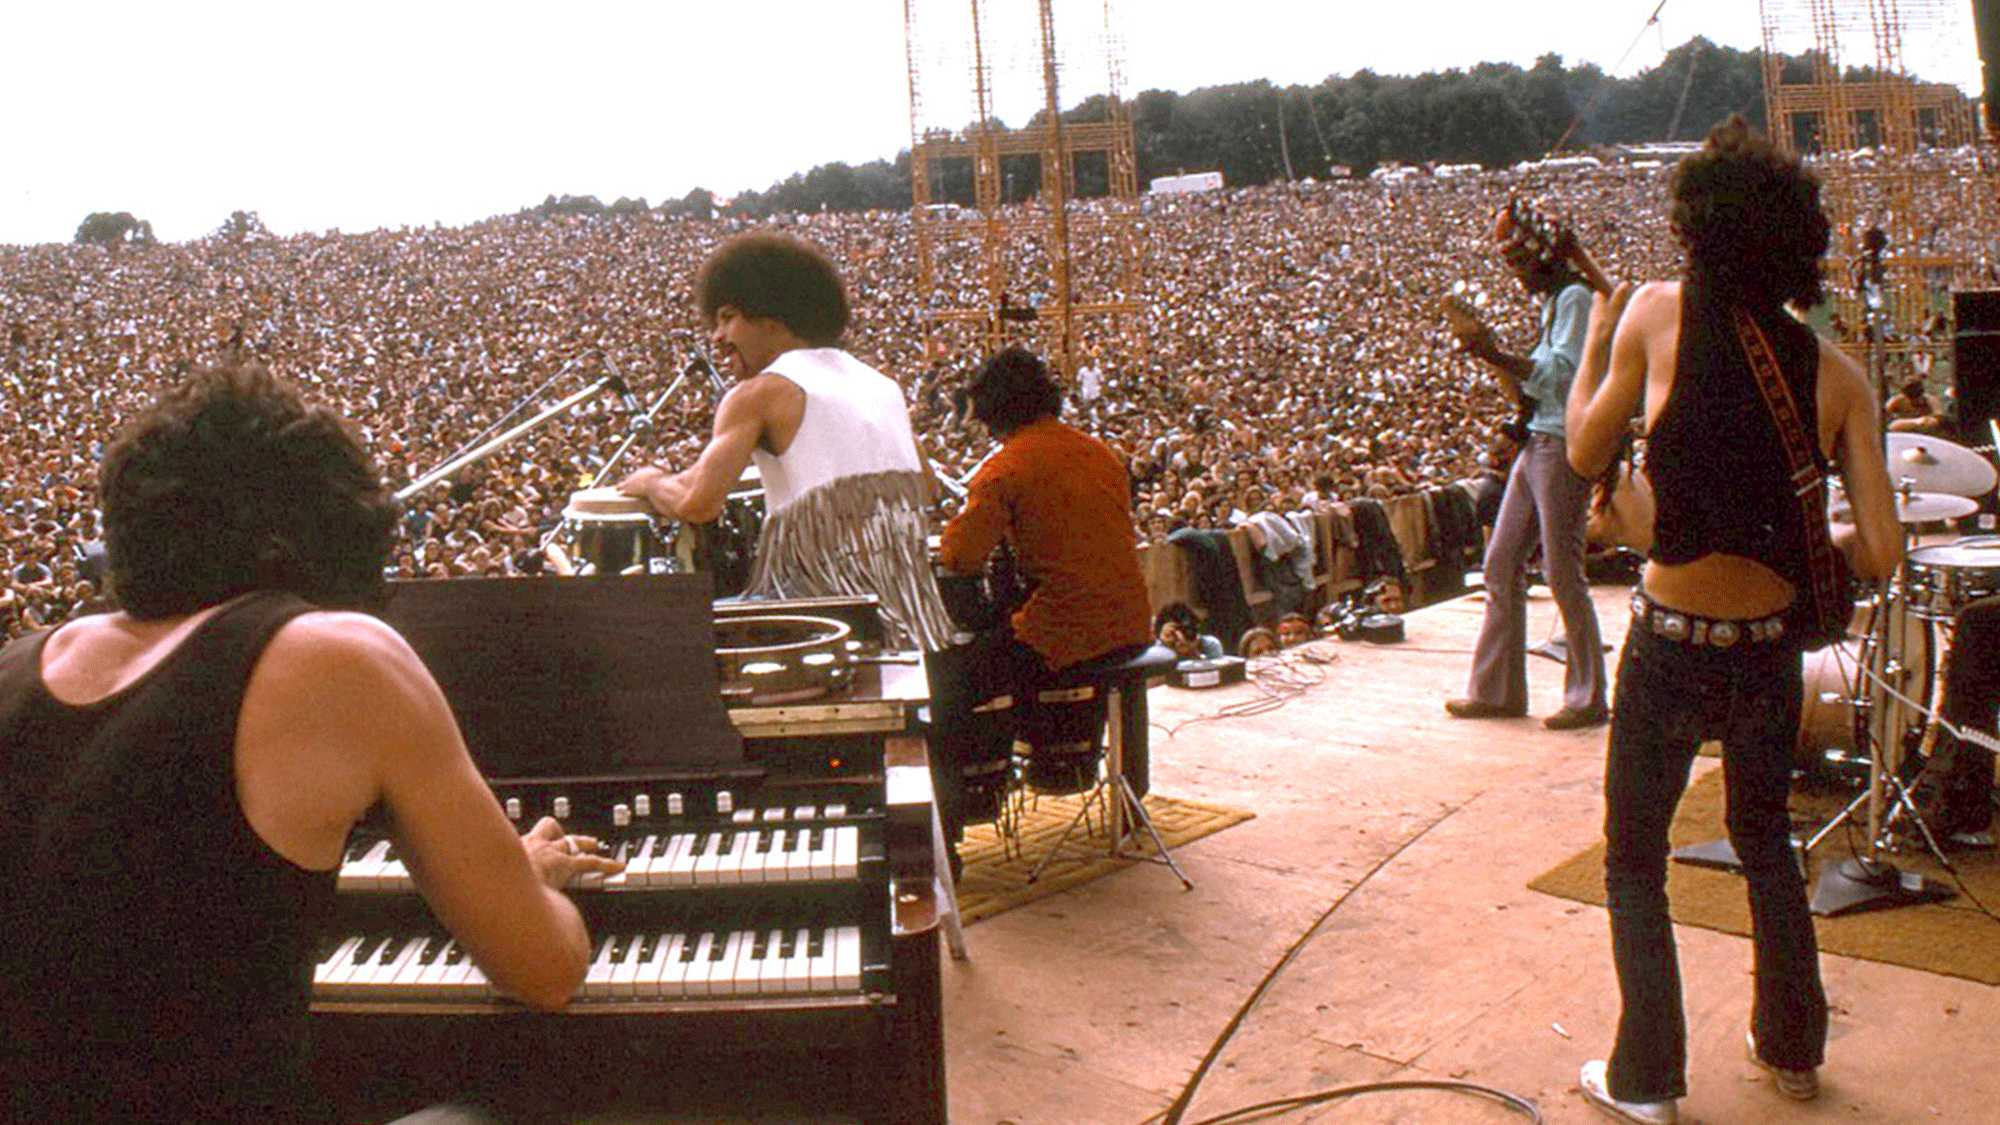 Woodstock: Three Days of Peace and Music (Director's Cut) (image 1)